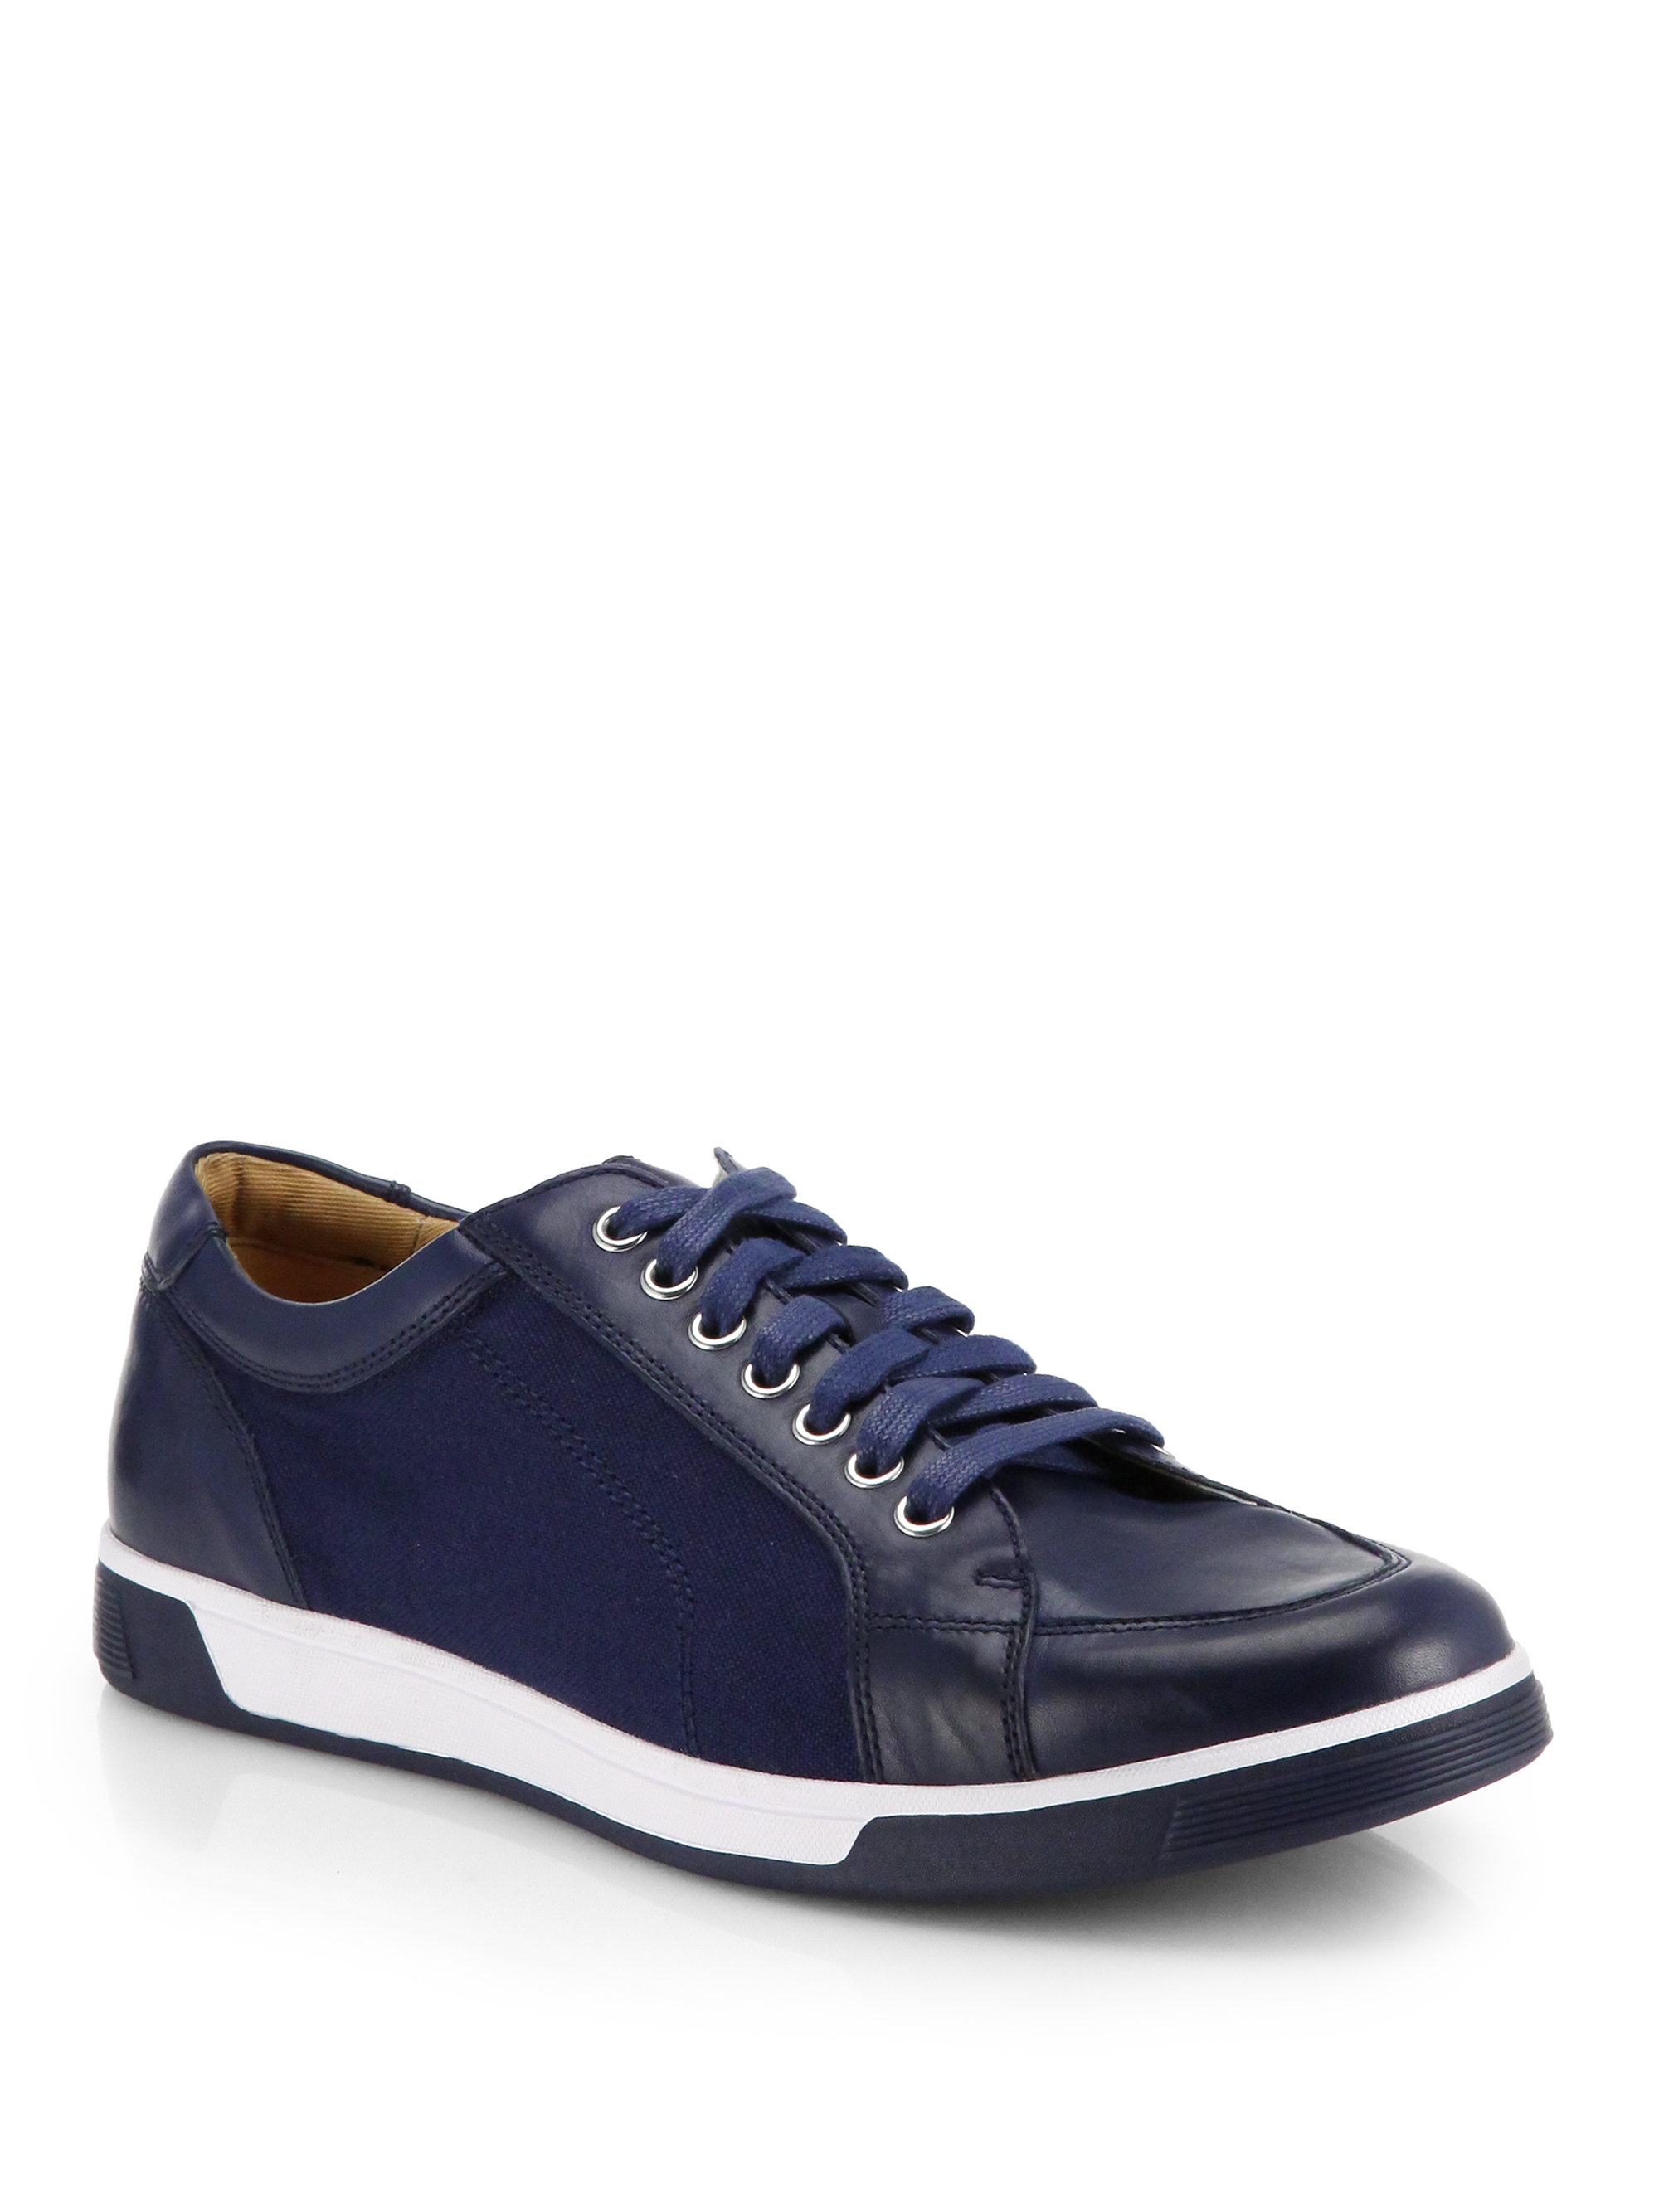 brogue detail sneakers - Blue Cole Haan YpPQvfOuLt